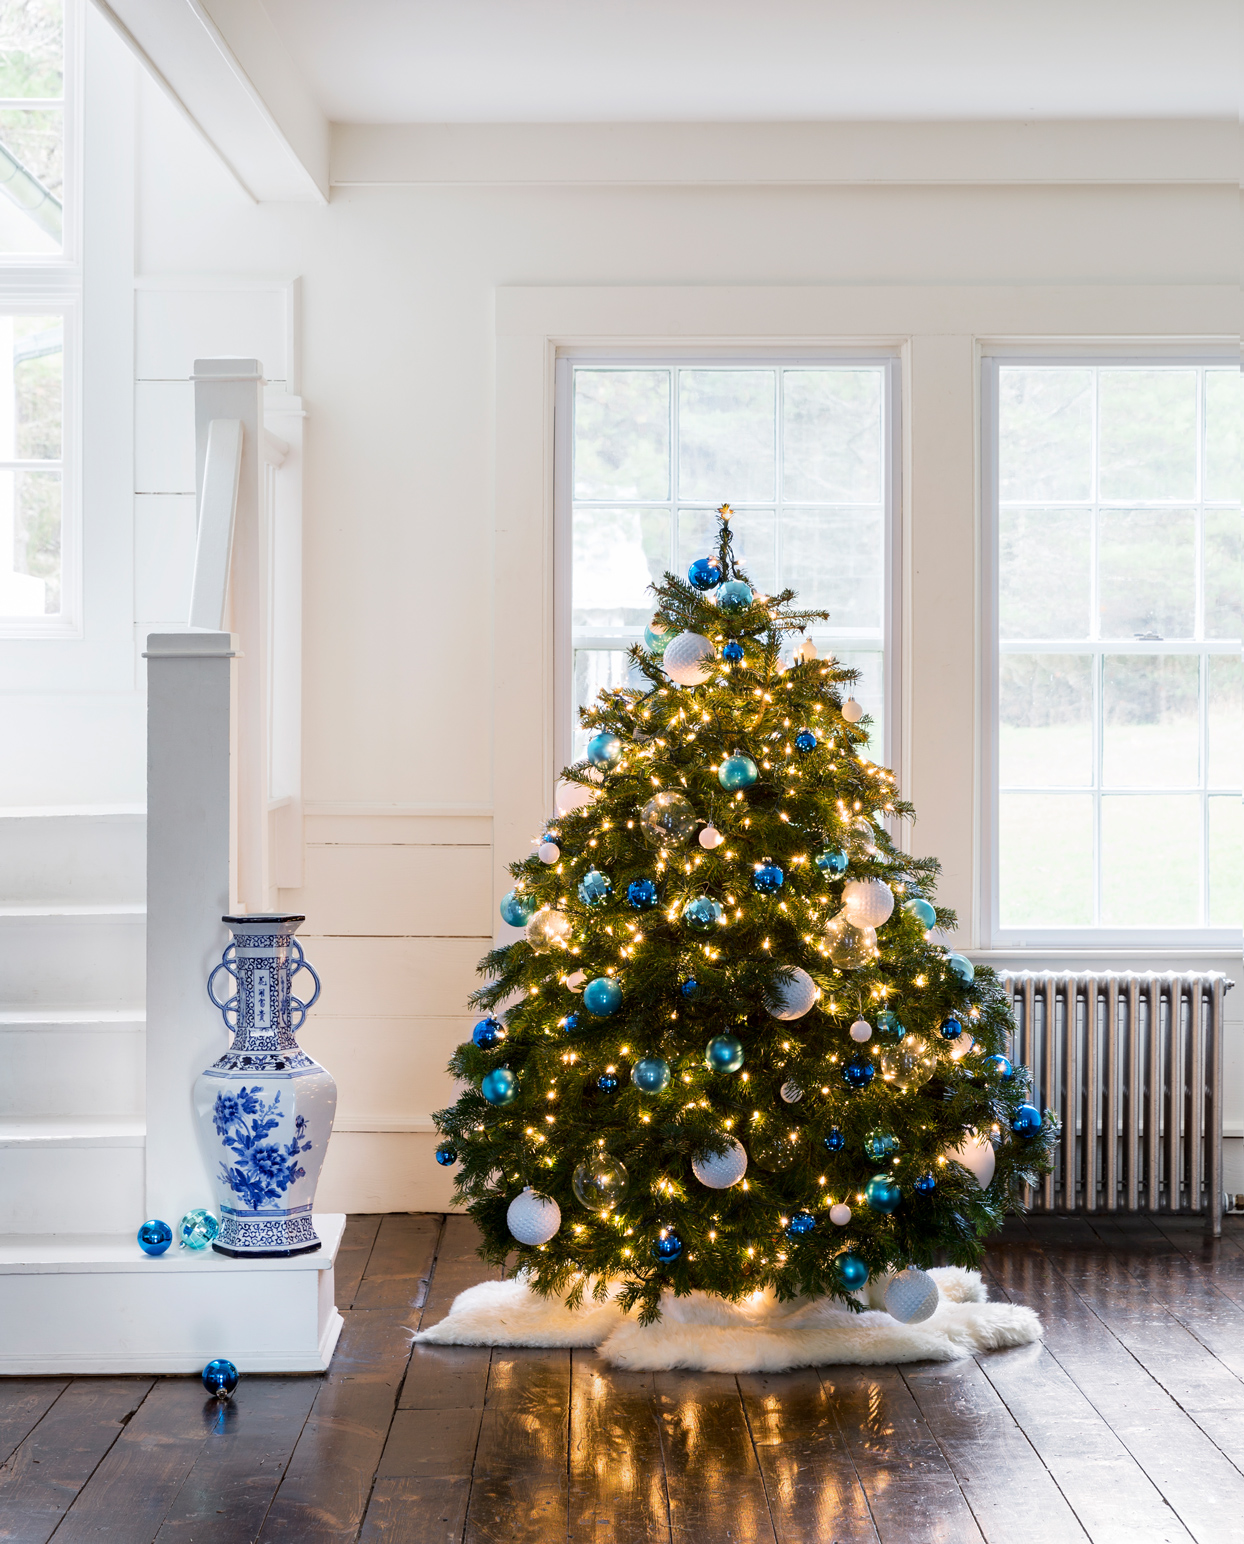 christmas tree with blue and white ornaments